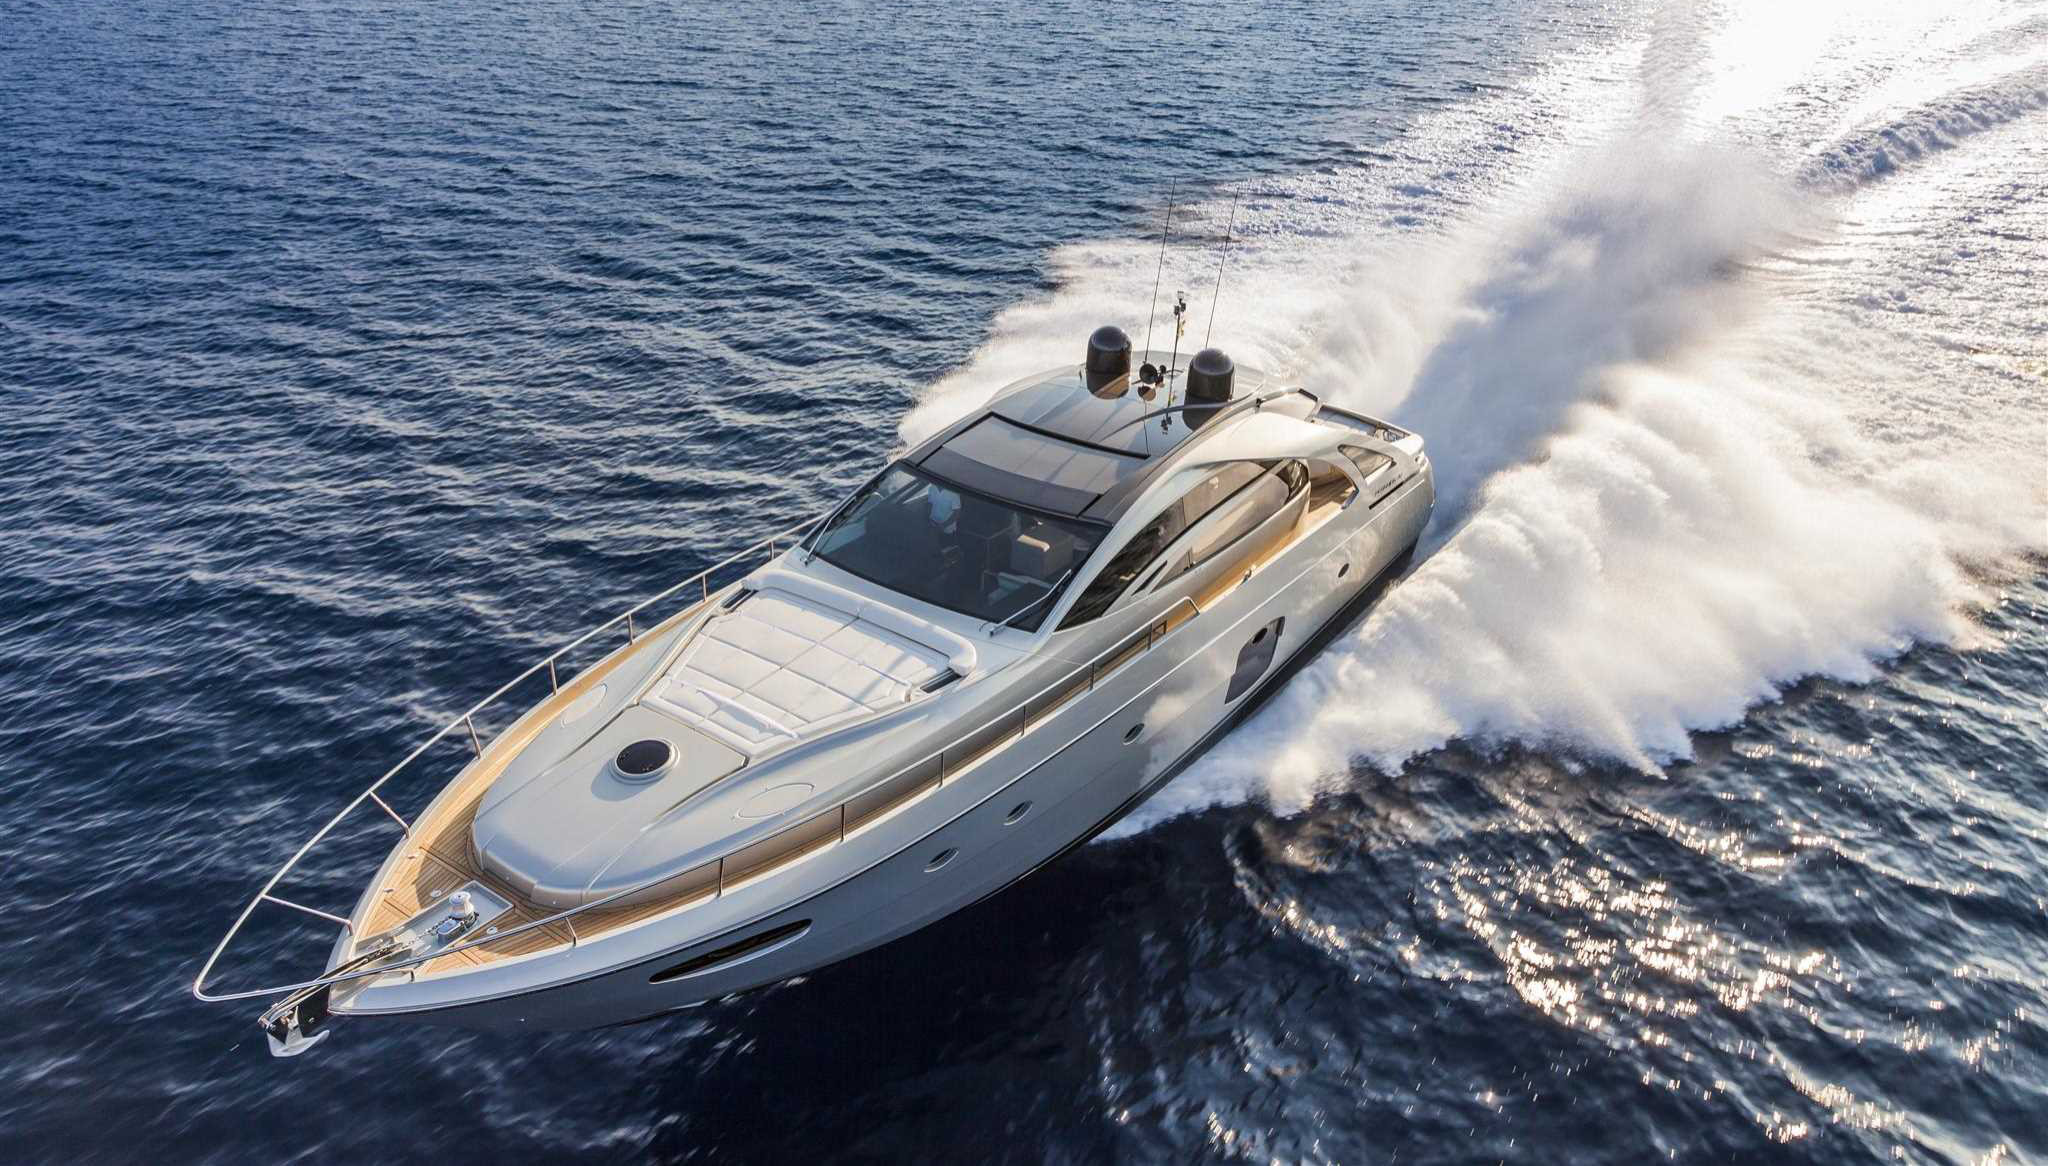 2018 Pershing Yachts 70 Luxury Boat for sale